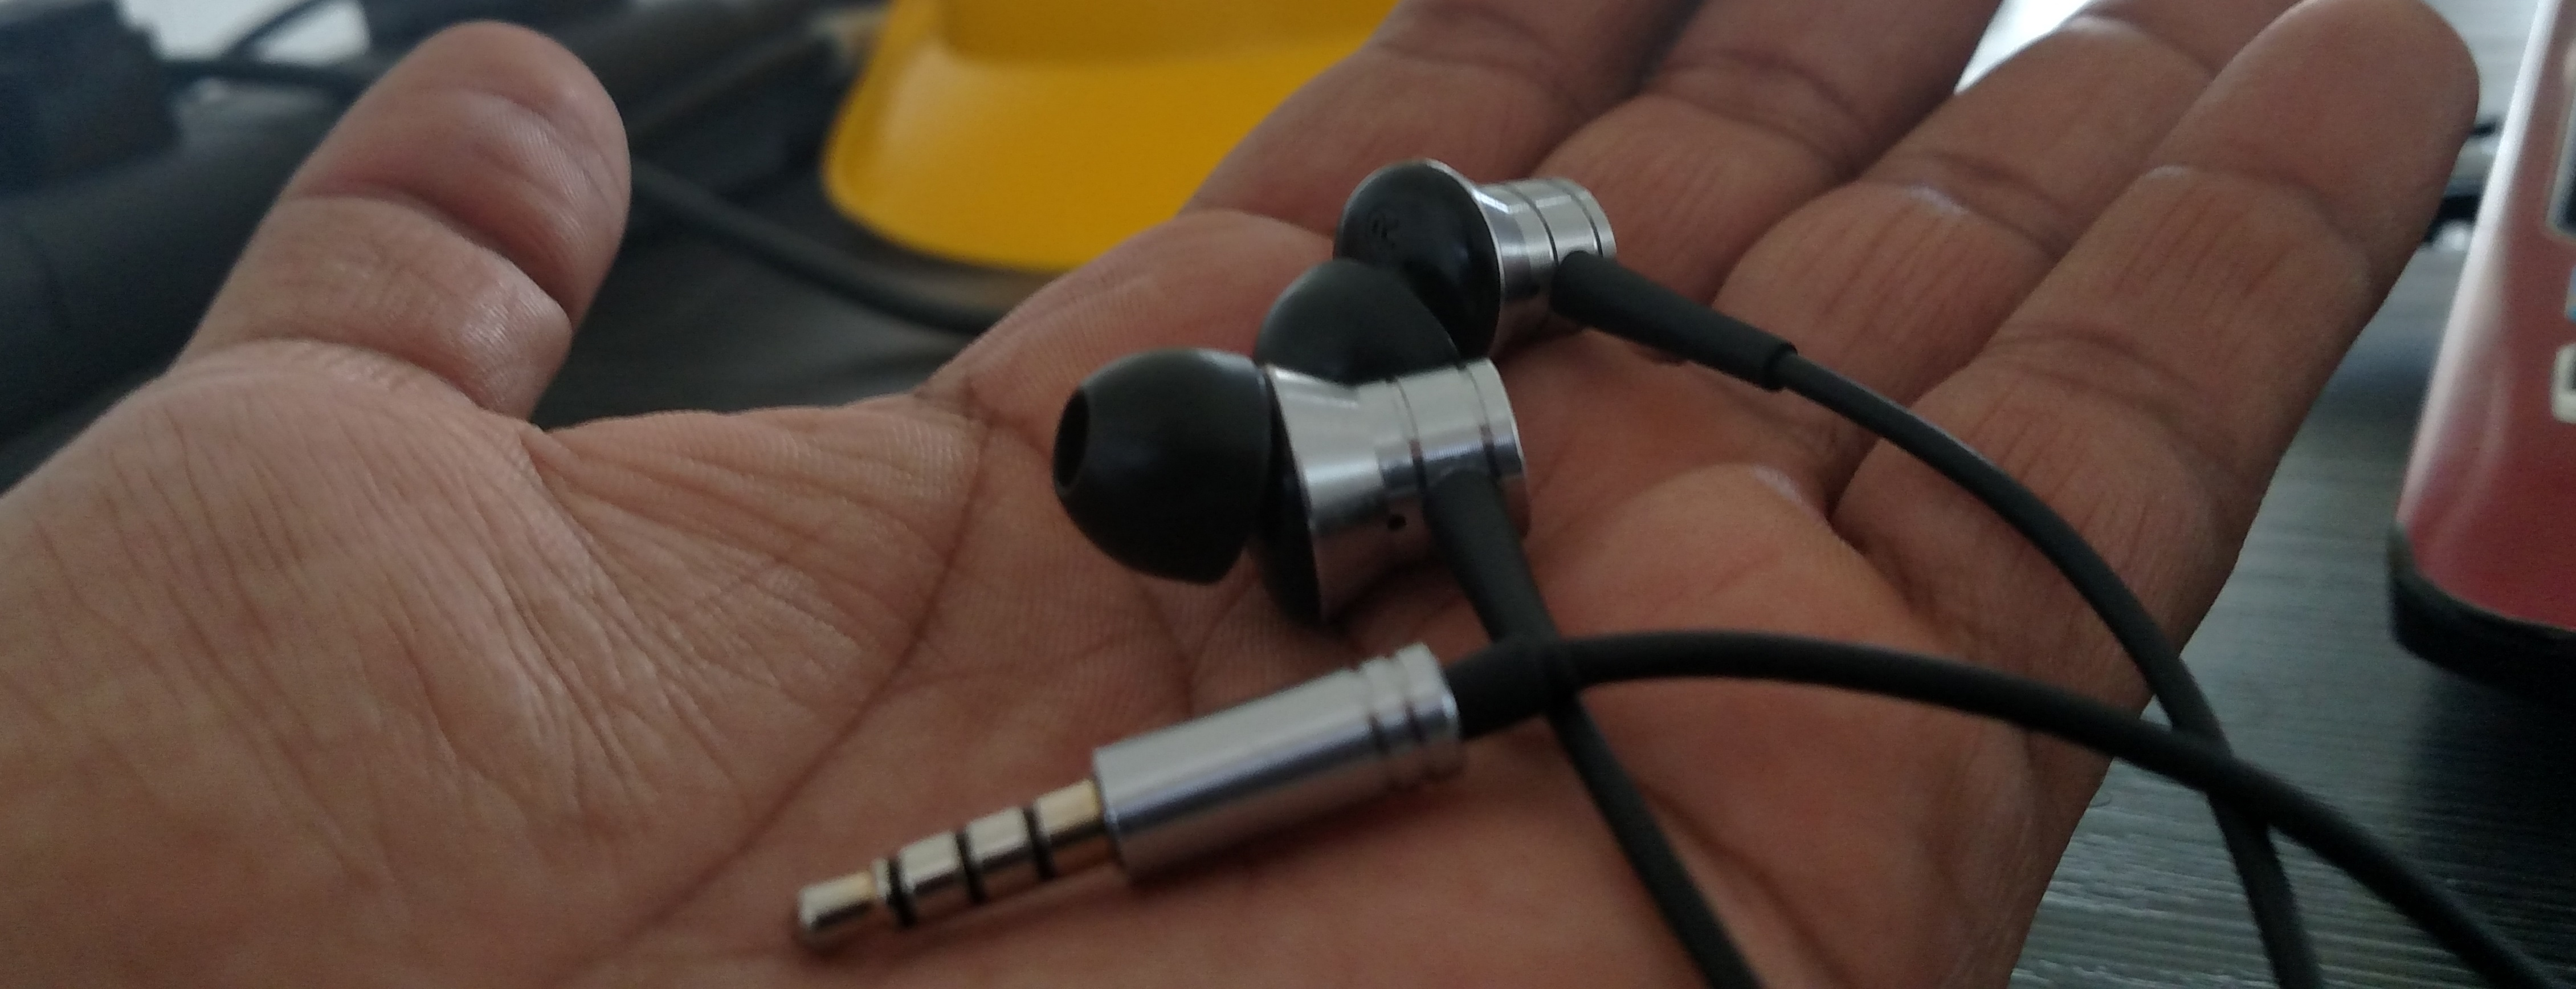 1more Piston Fit Earphones With Mic Review Earphone In Ear Flag This